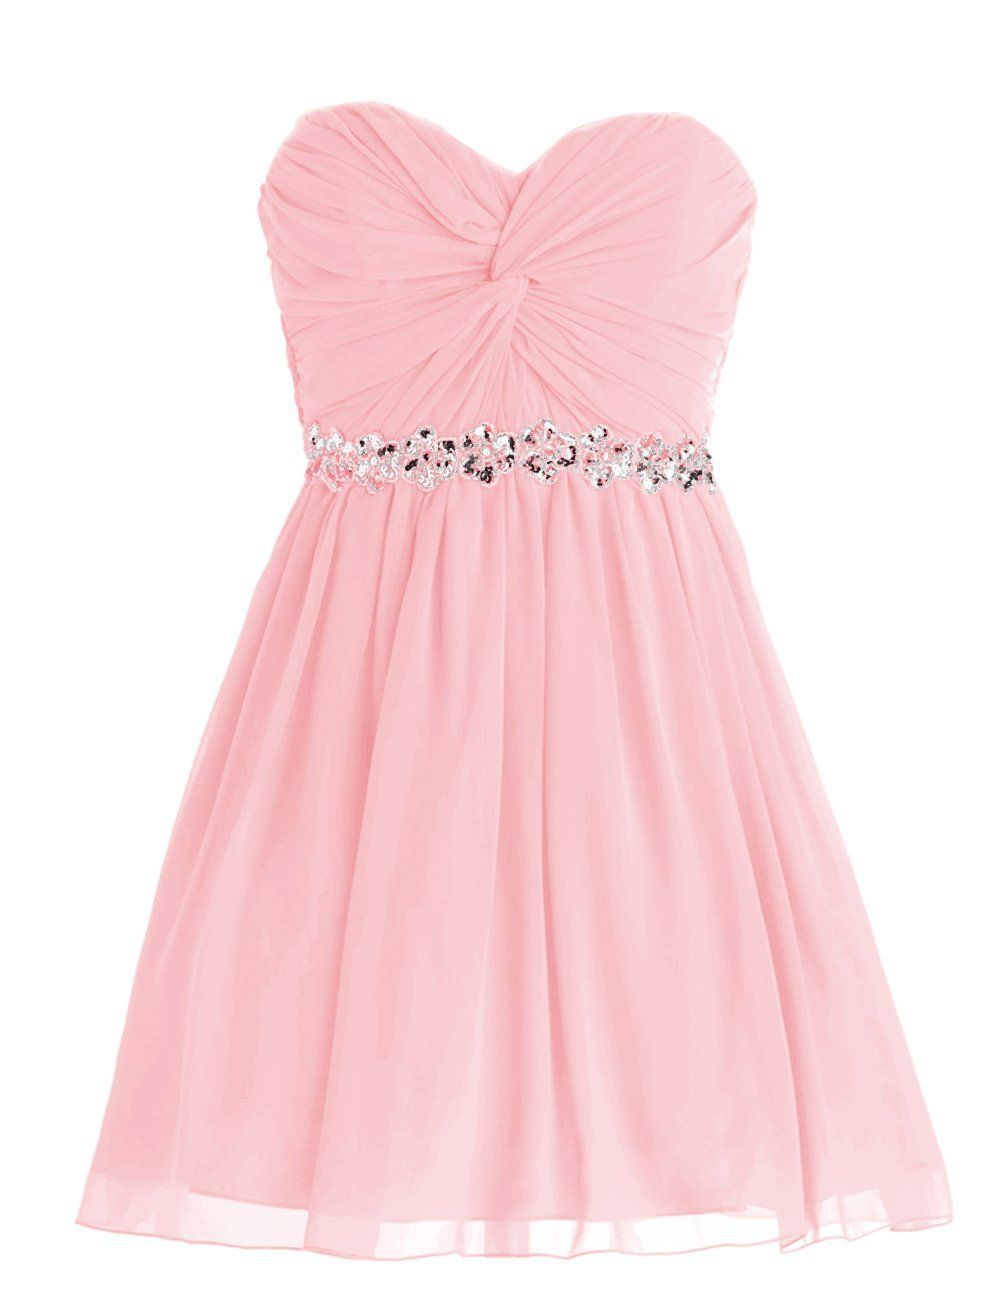 Amazon.com: Dressystar Short Chiffon Bridesmaid Dresses Strapless Girls Prom Gowns: Clothing